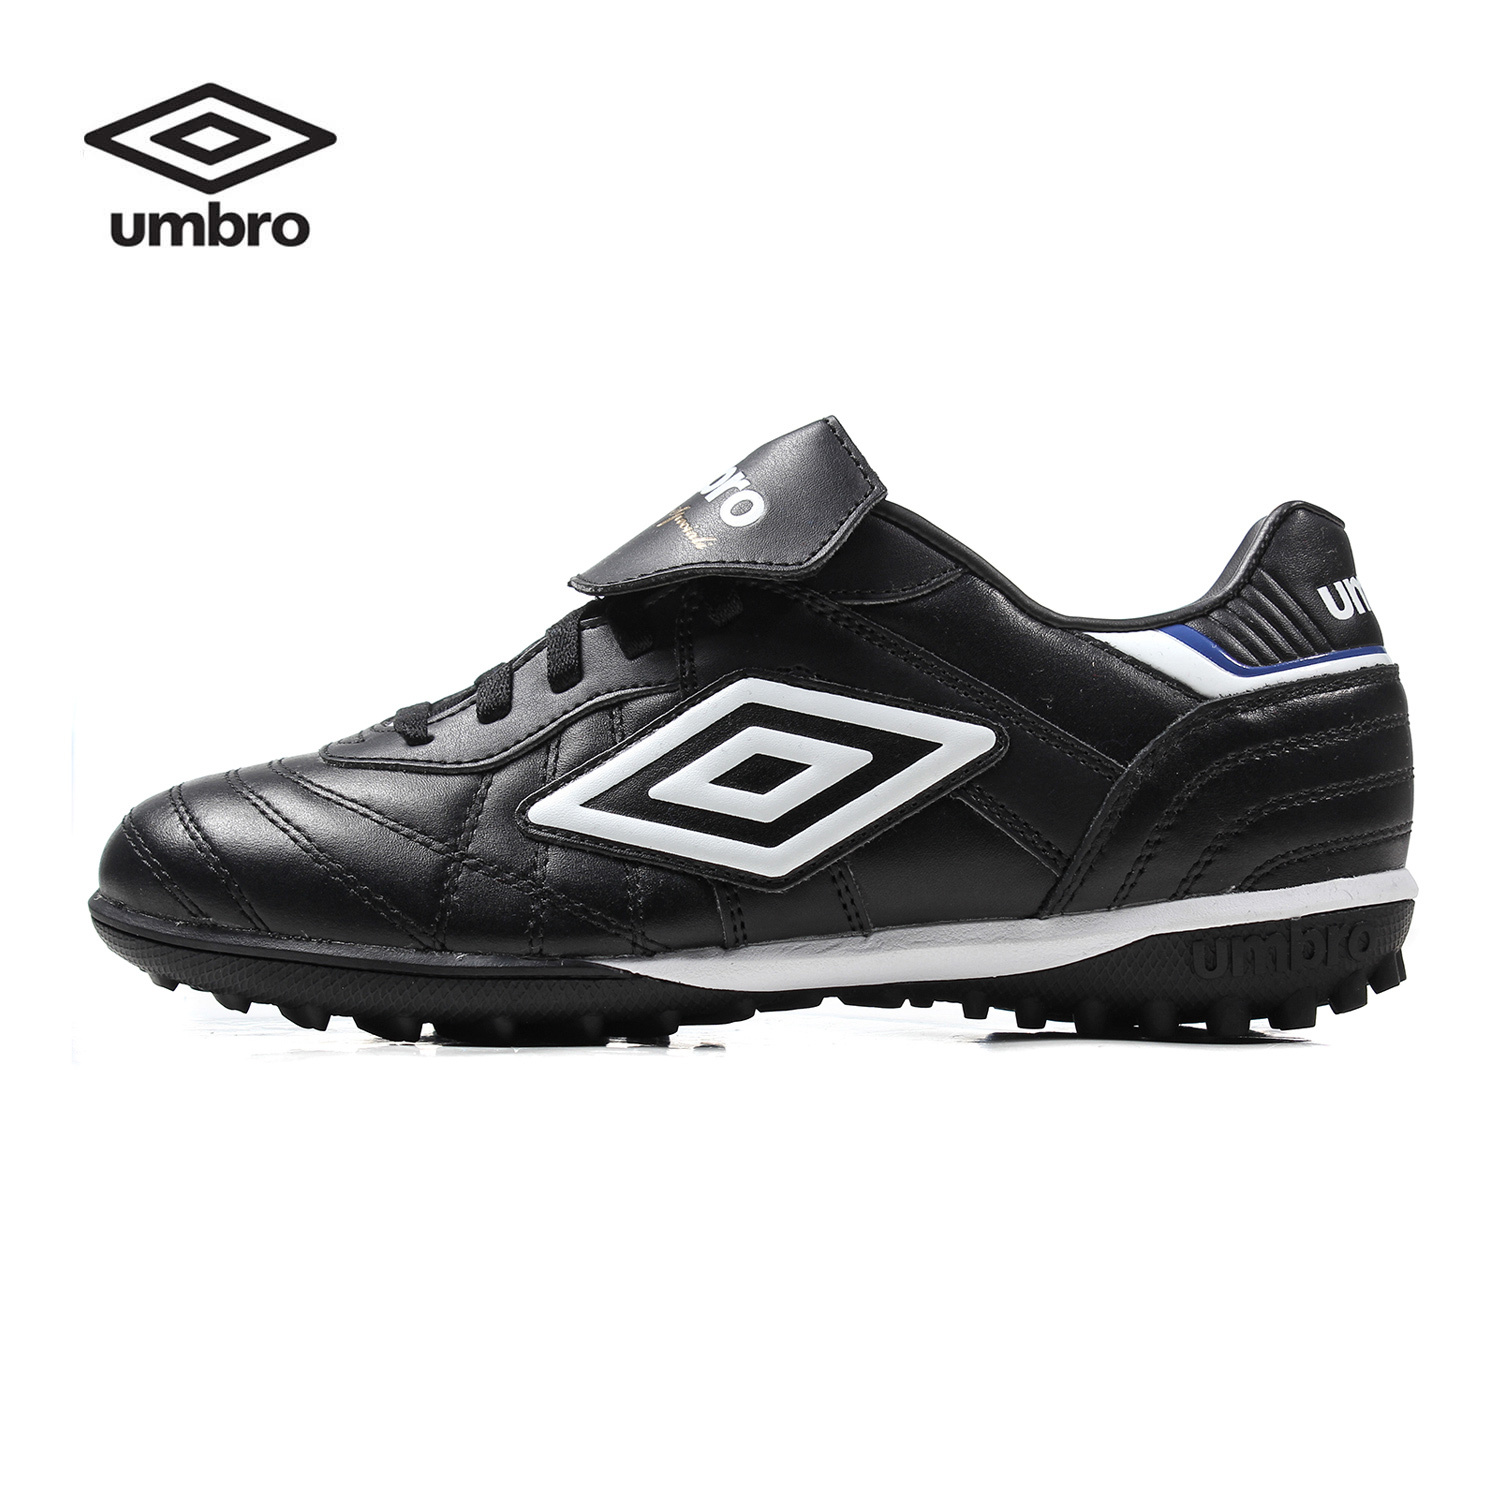 Umbro Men's Non-Spikes Soccer Shoes Sports Match Training Shoes Men Spike Shoes Football Mens Shoes Ucb90117 umbro new men hard groud professional training sports football shoes soccer boots men spike shoes ucb90137